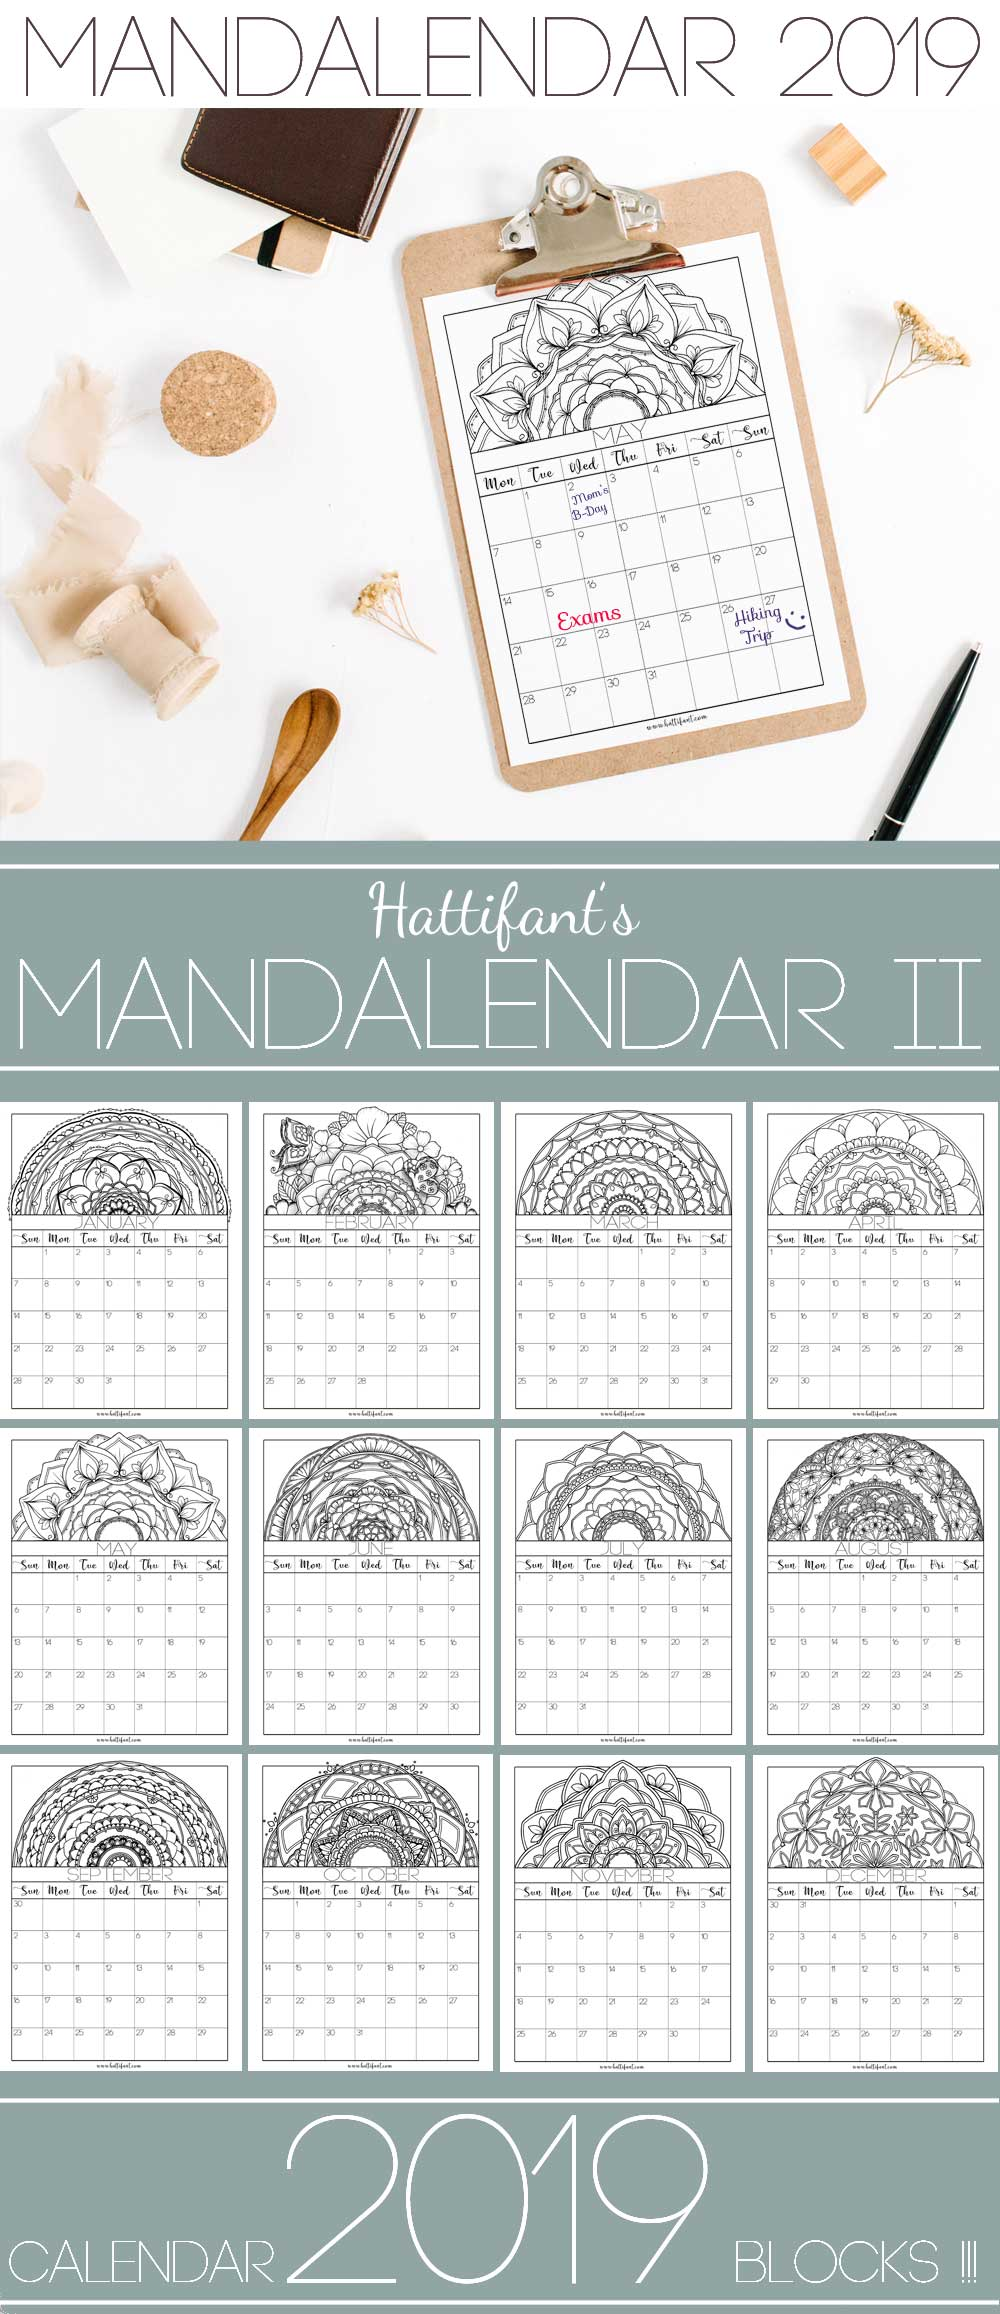 Hattifant's Mandalendar 2019 a Mandala Calendar to Color Block 2